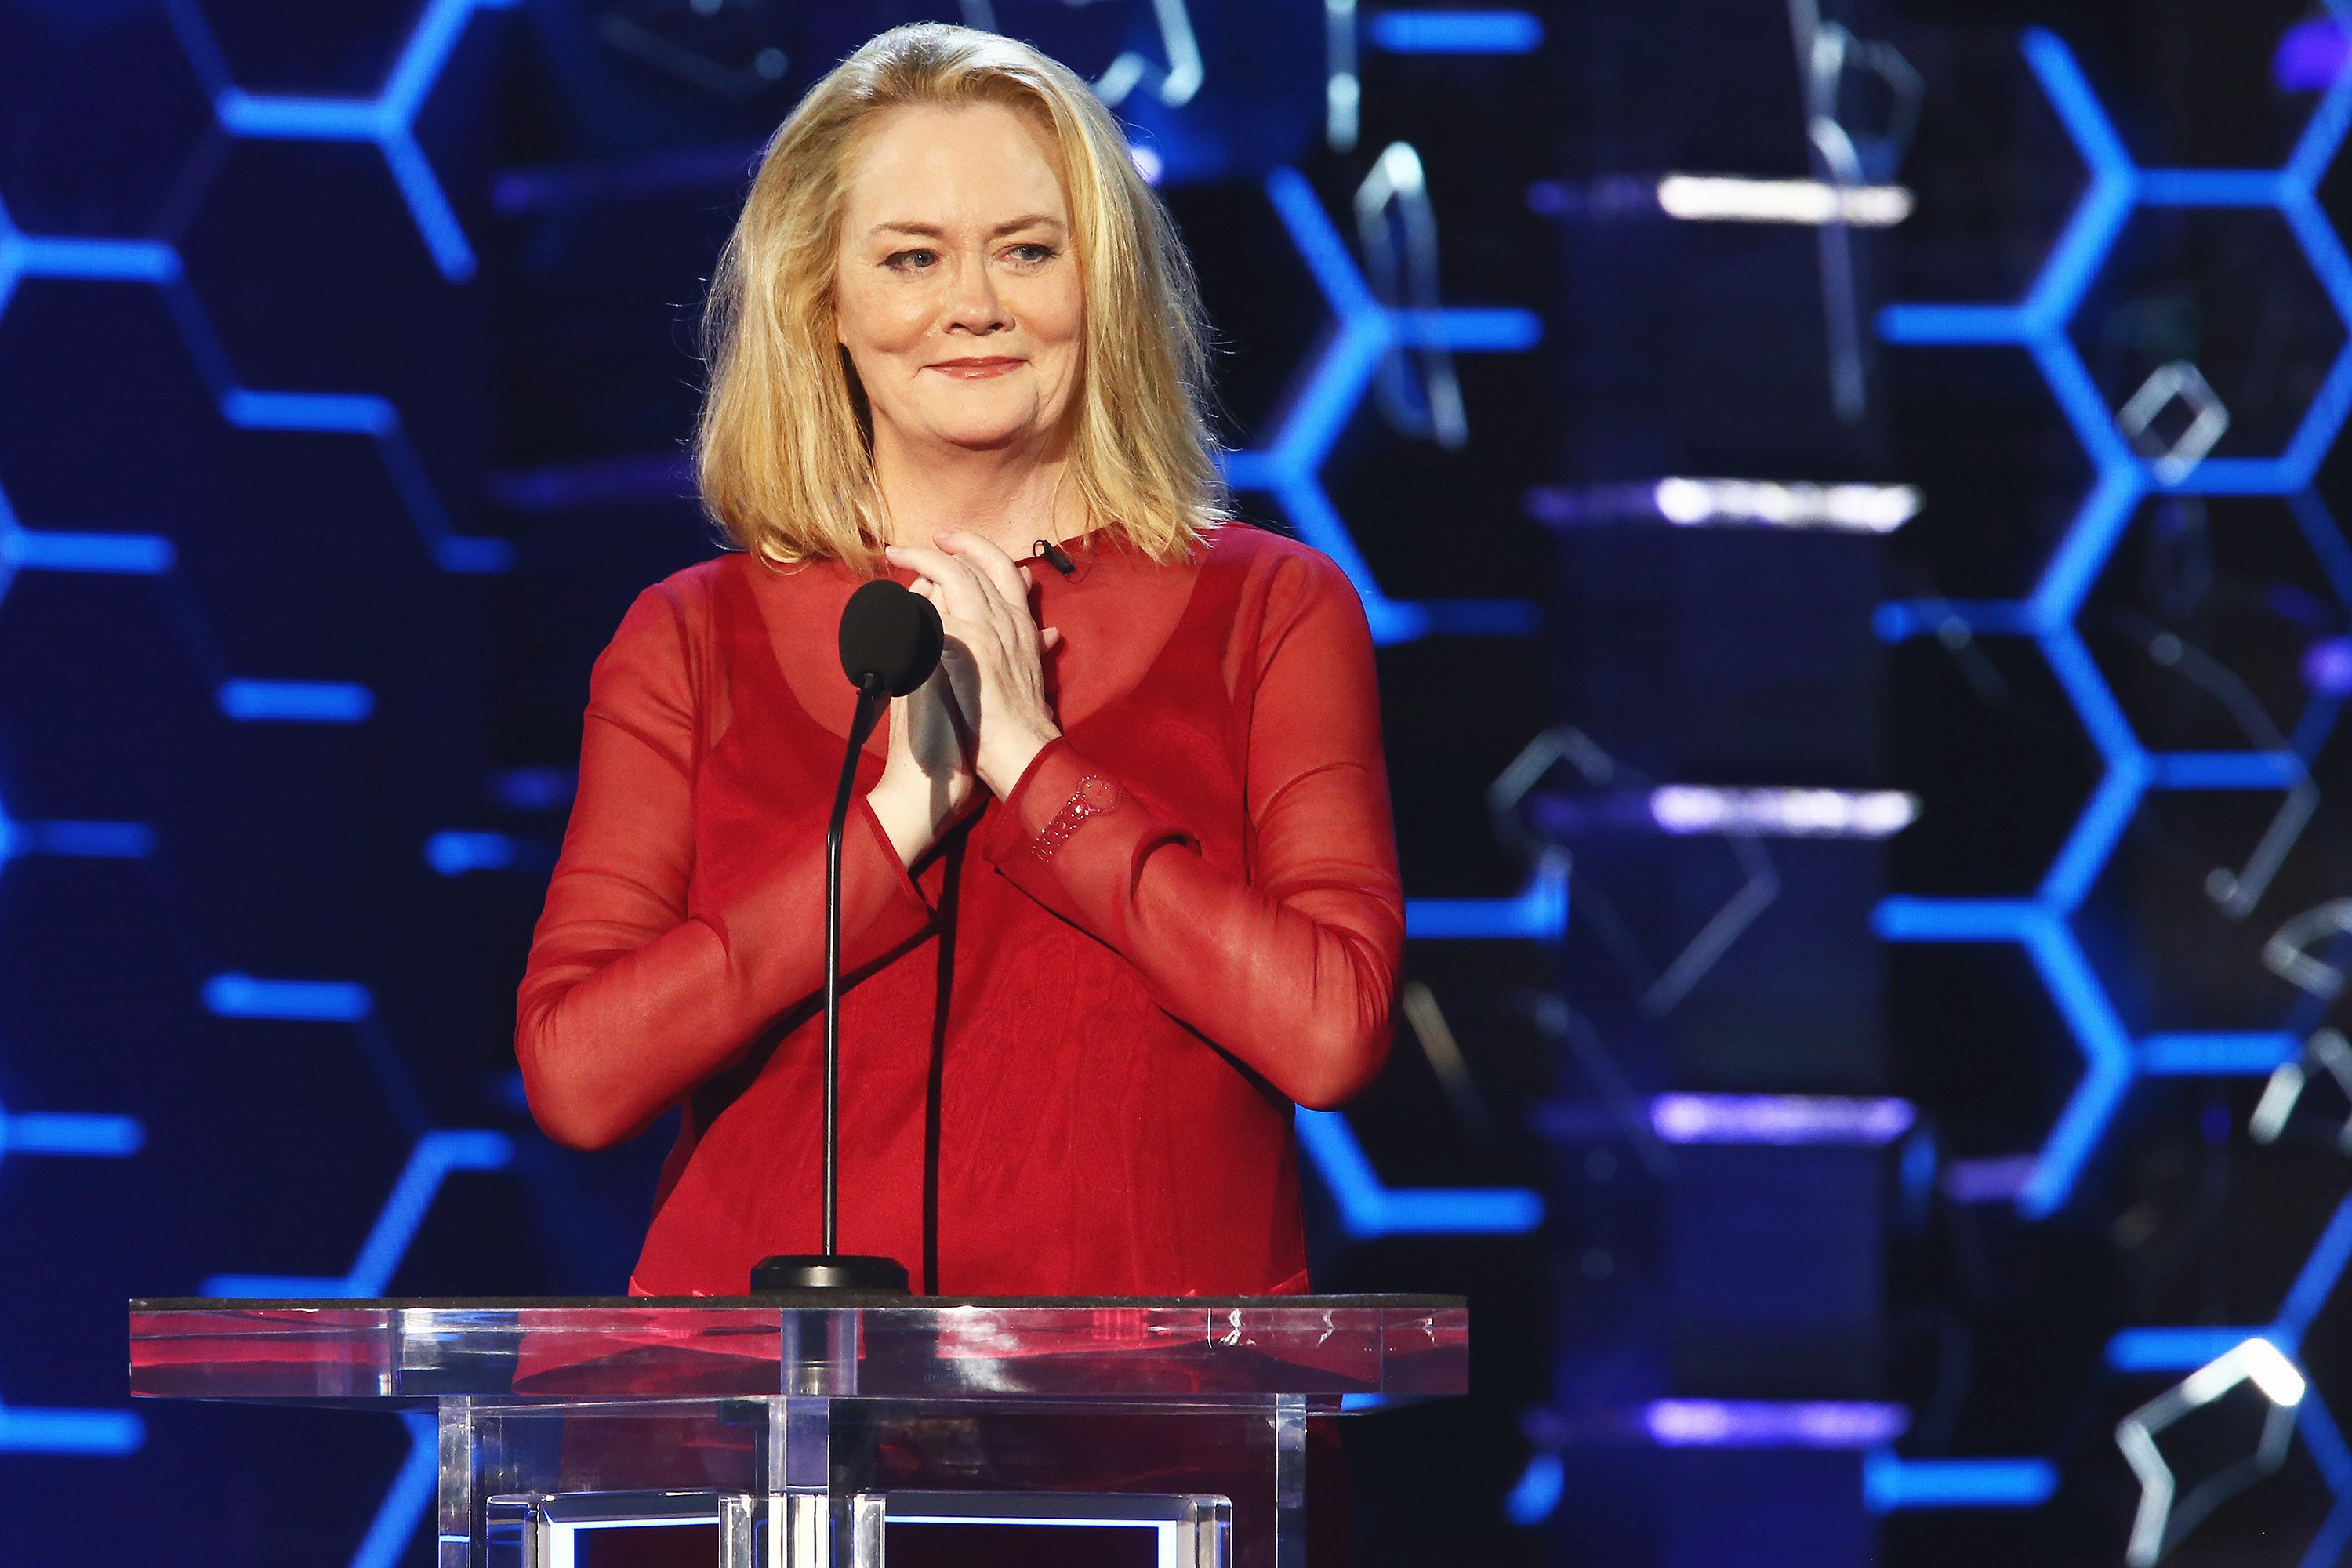 Cybill Shepherd at the Comedy Central Roast Of Bruce Willis on July 14, 2018 | Photo: Getty Images